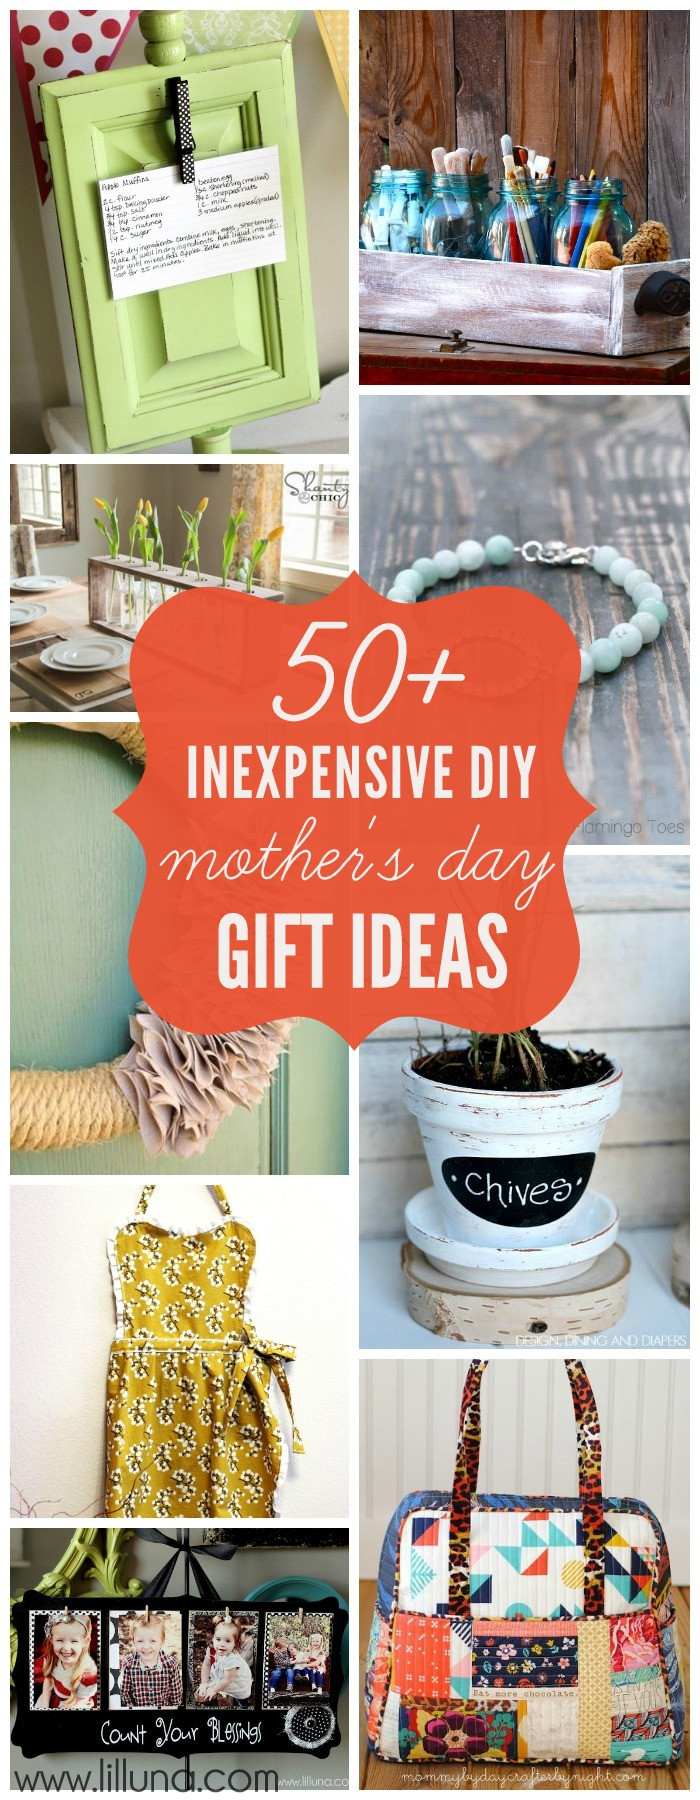 Best ideas about Father'S Day Diy Gift Ideas . Save or Pin DIY Mother s Day Gifts for under 5 Now.